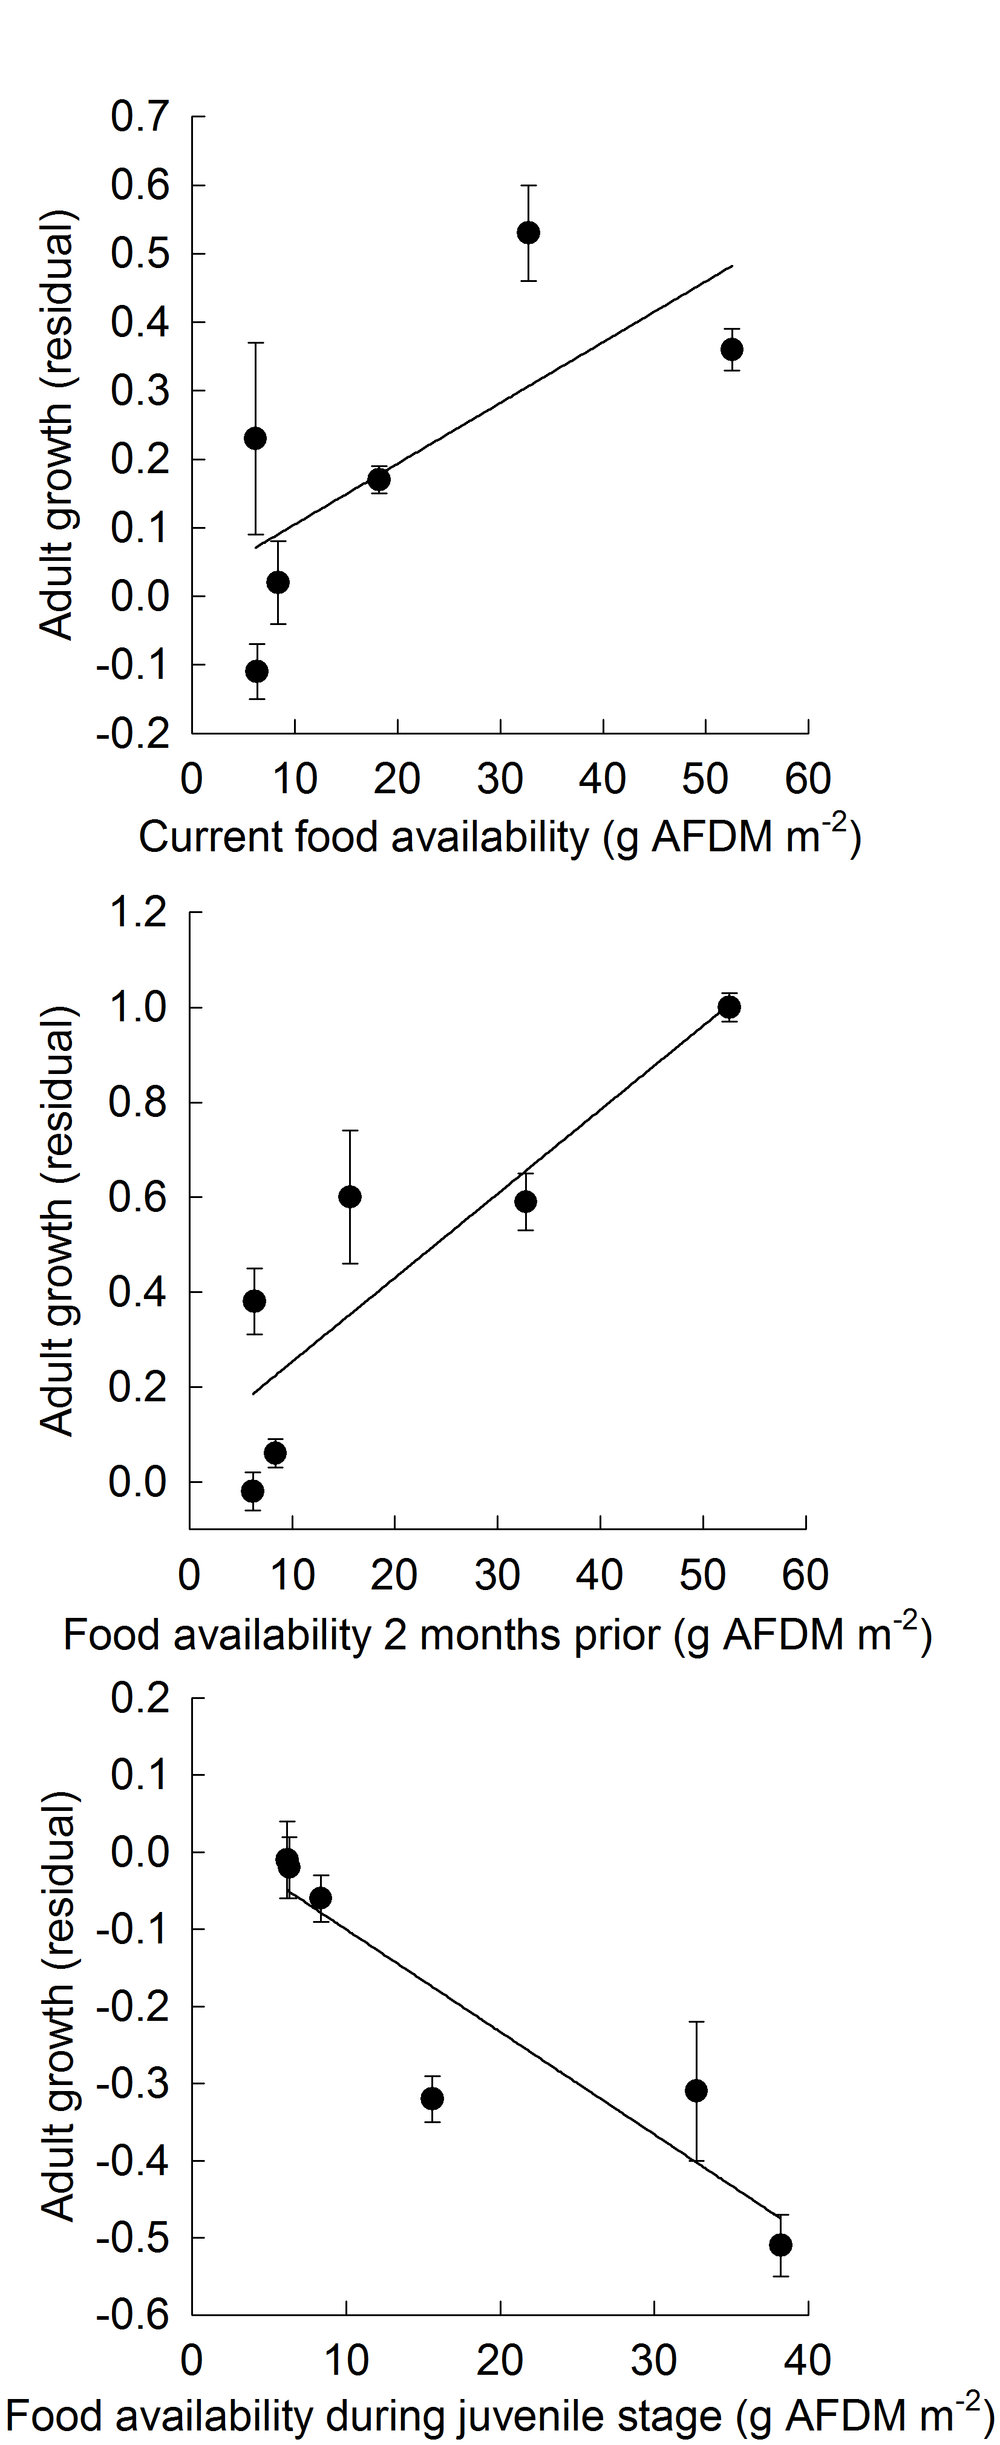 Adult growth as a function of food availability (a) in the present, (b) 2 months prior and (c) during the juvenile stage in Trinidadian guppies in a tributary to the Guanapo River in Trinidad, West Indies. Food availability is calculated as the summed ash free dry mass (g) of both algae and invertebrates per square metre. Shown are weighted partial residuals after accounting for female body size and all other environmental variables and their interactions.